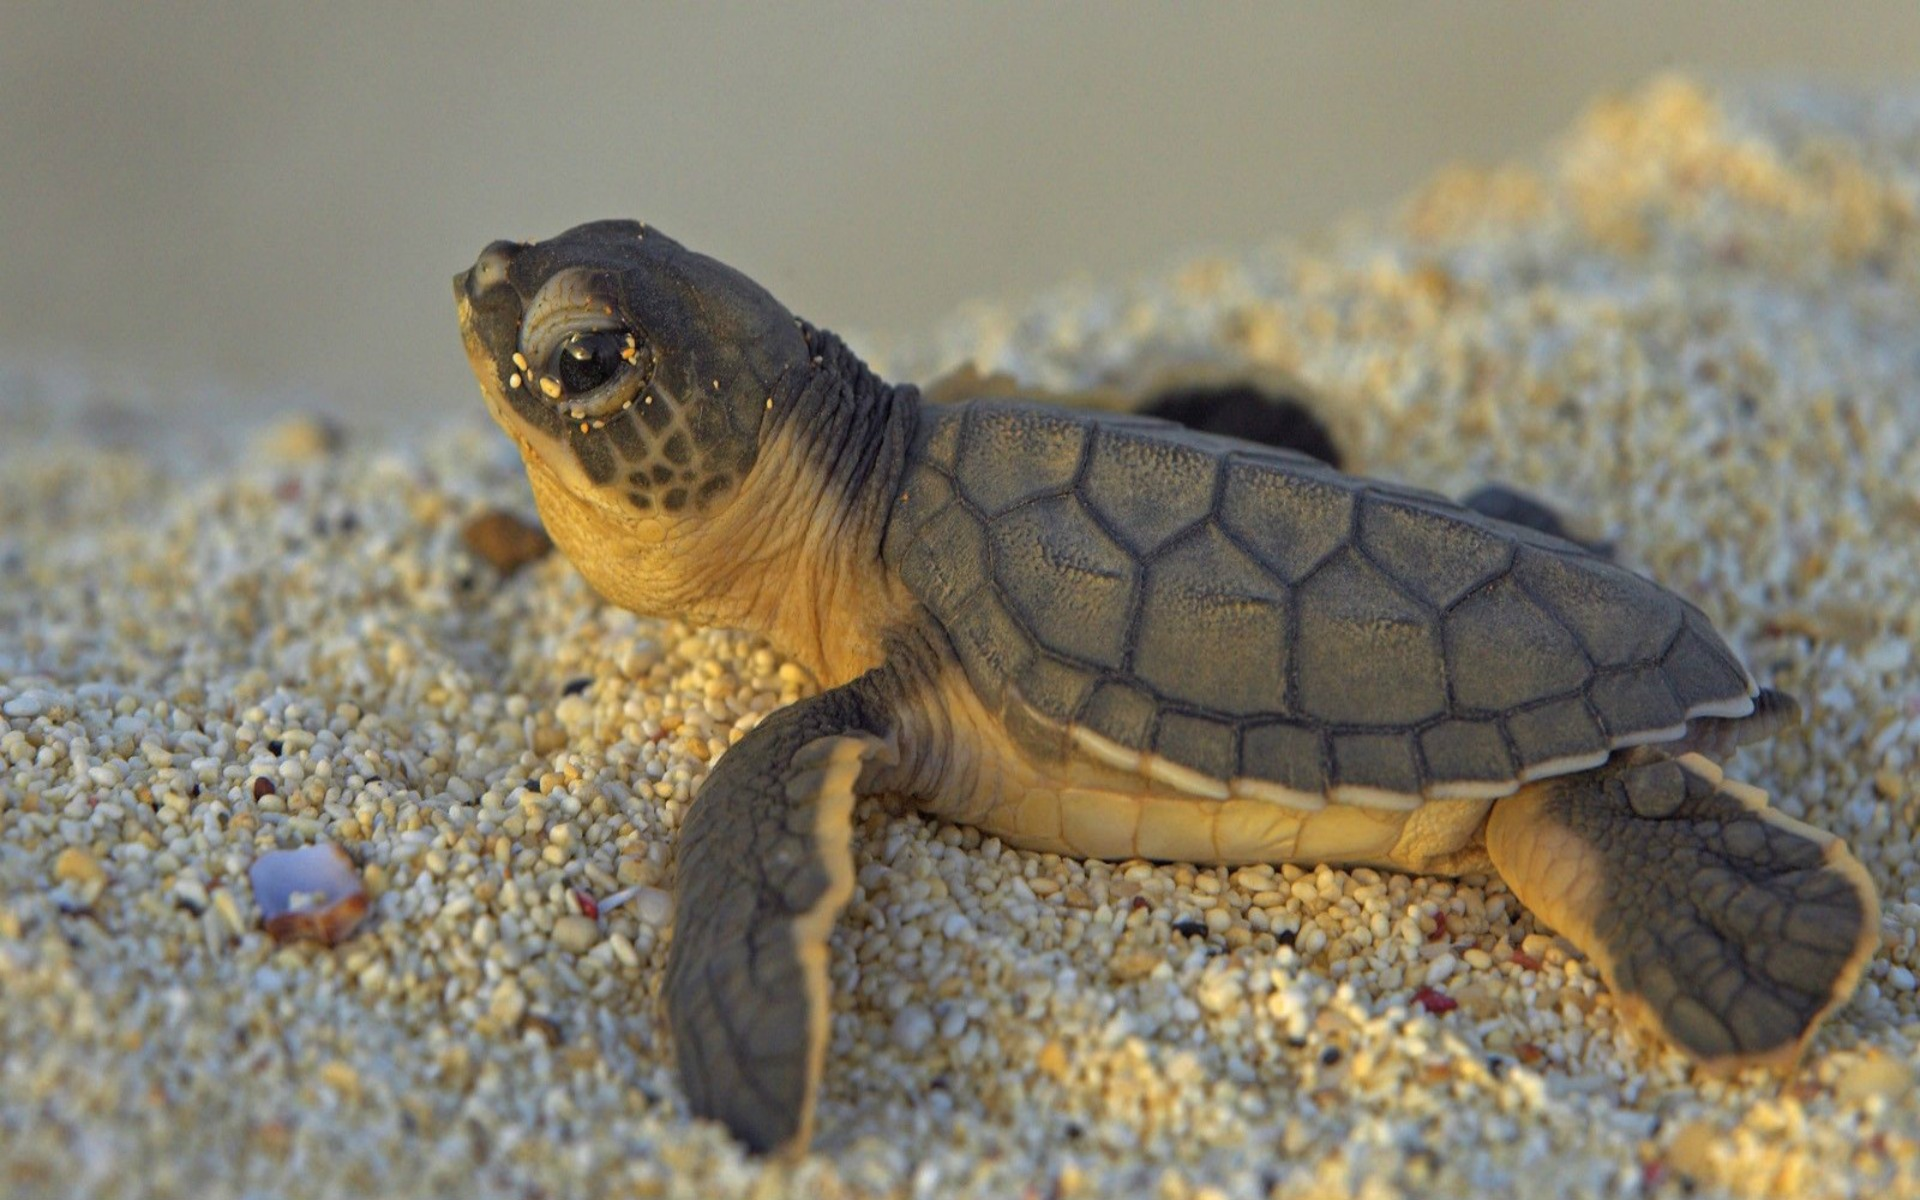 DOWNLOAD: cute turtle cub free picture 2560 x 1600